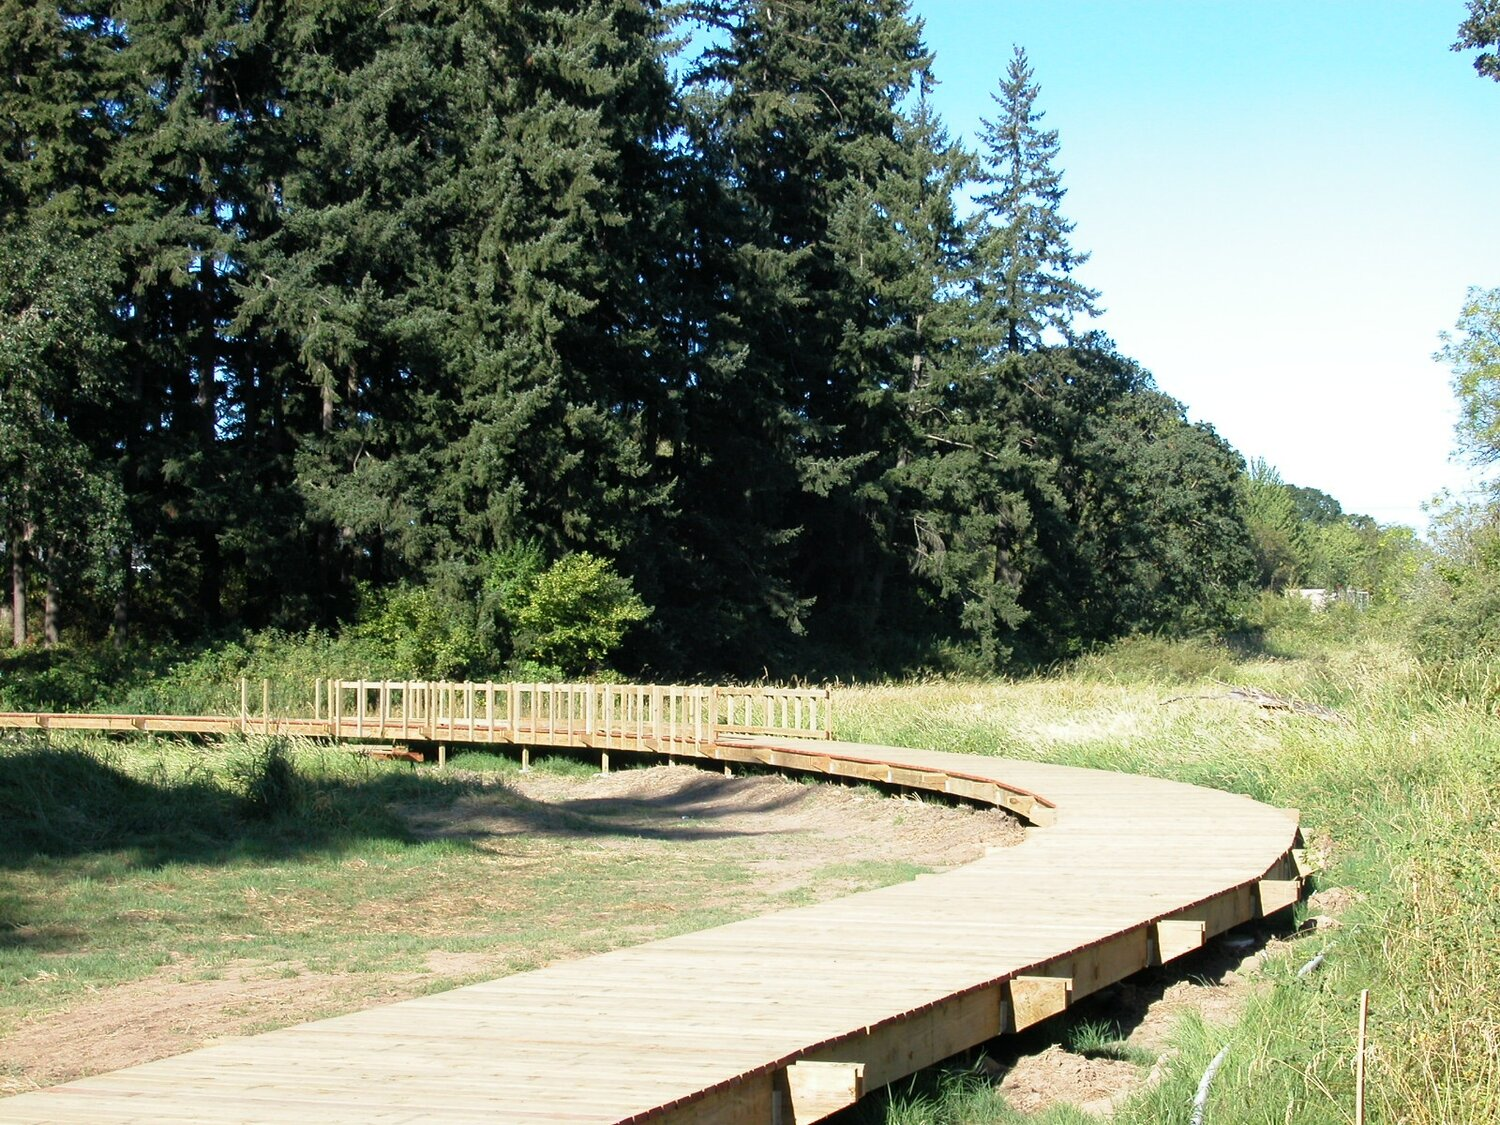 newly built boardwalk in field, curving away into the distance, sunny day